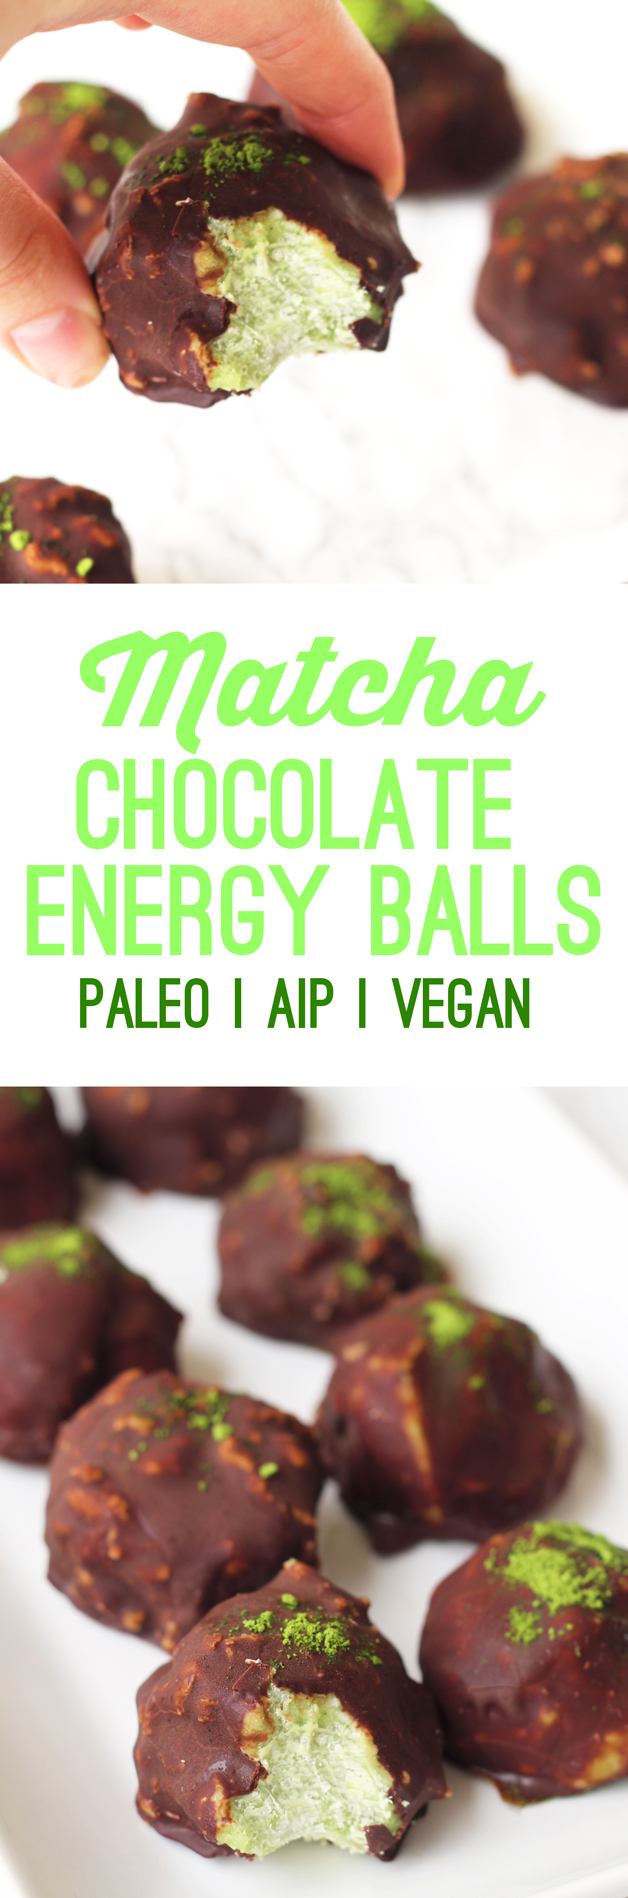 Chocolate Matcha Energy Balls (Paleo, AIP, Vegan)